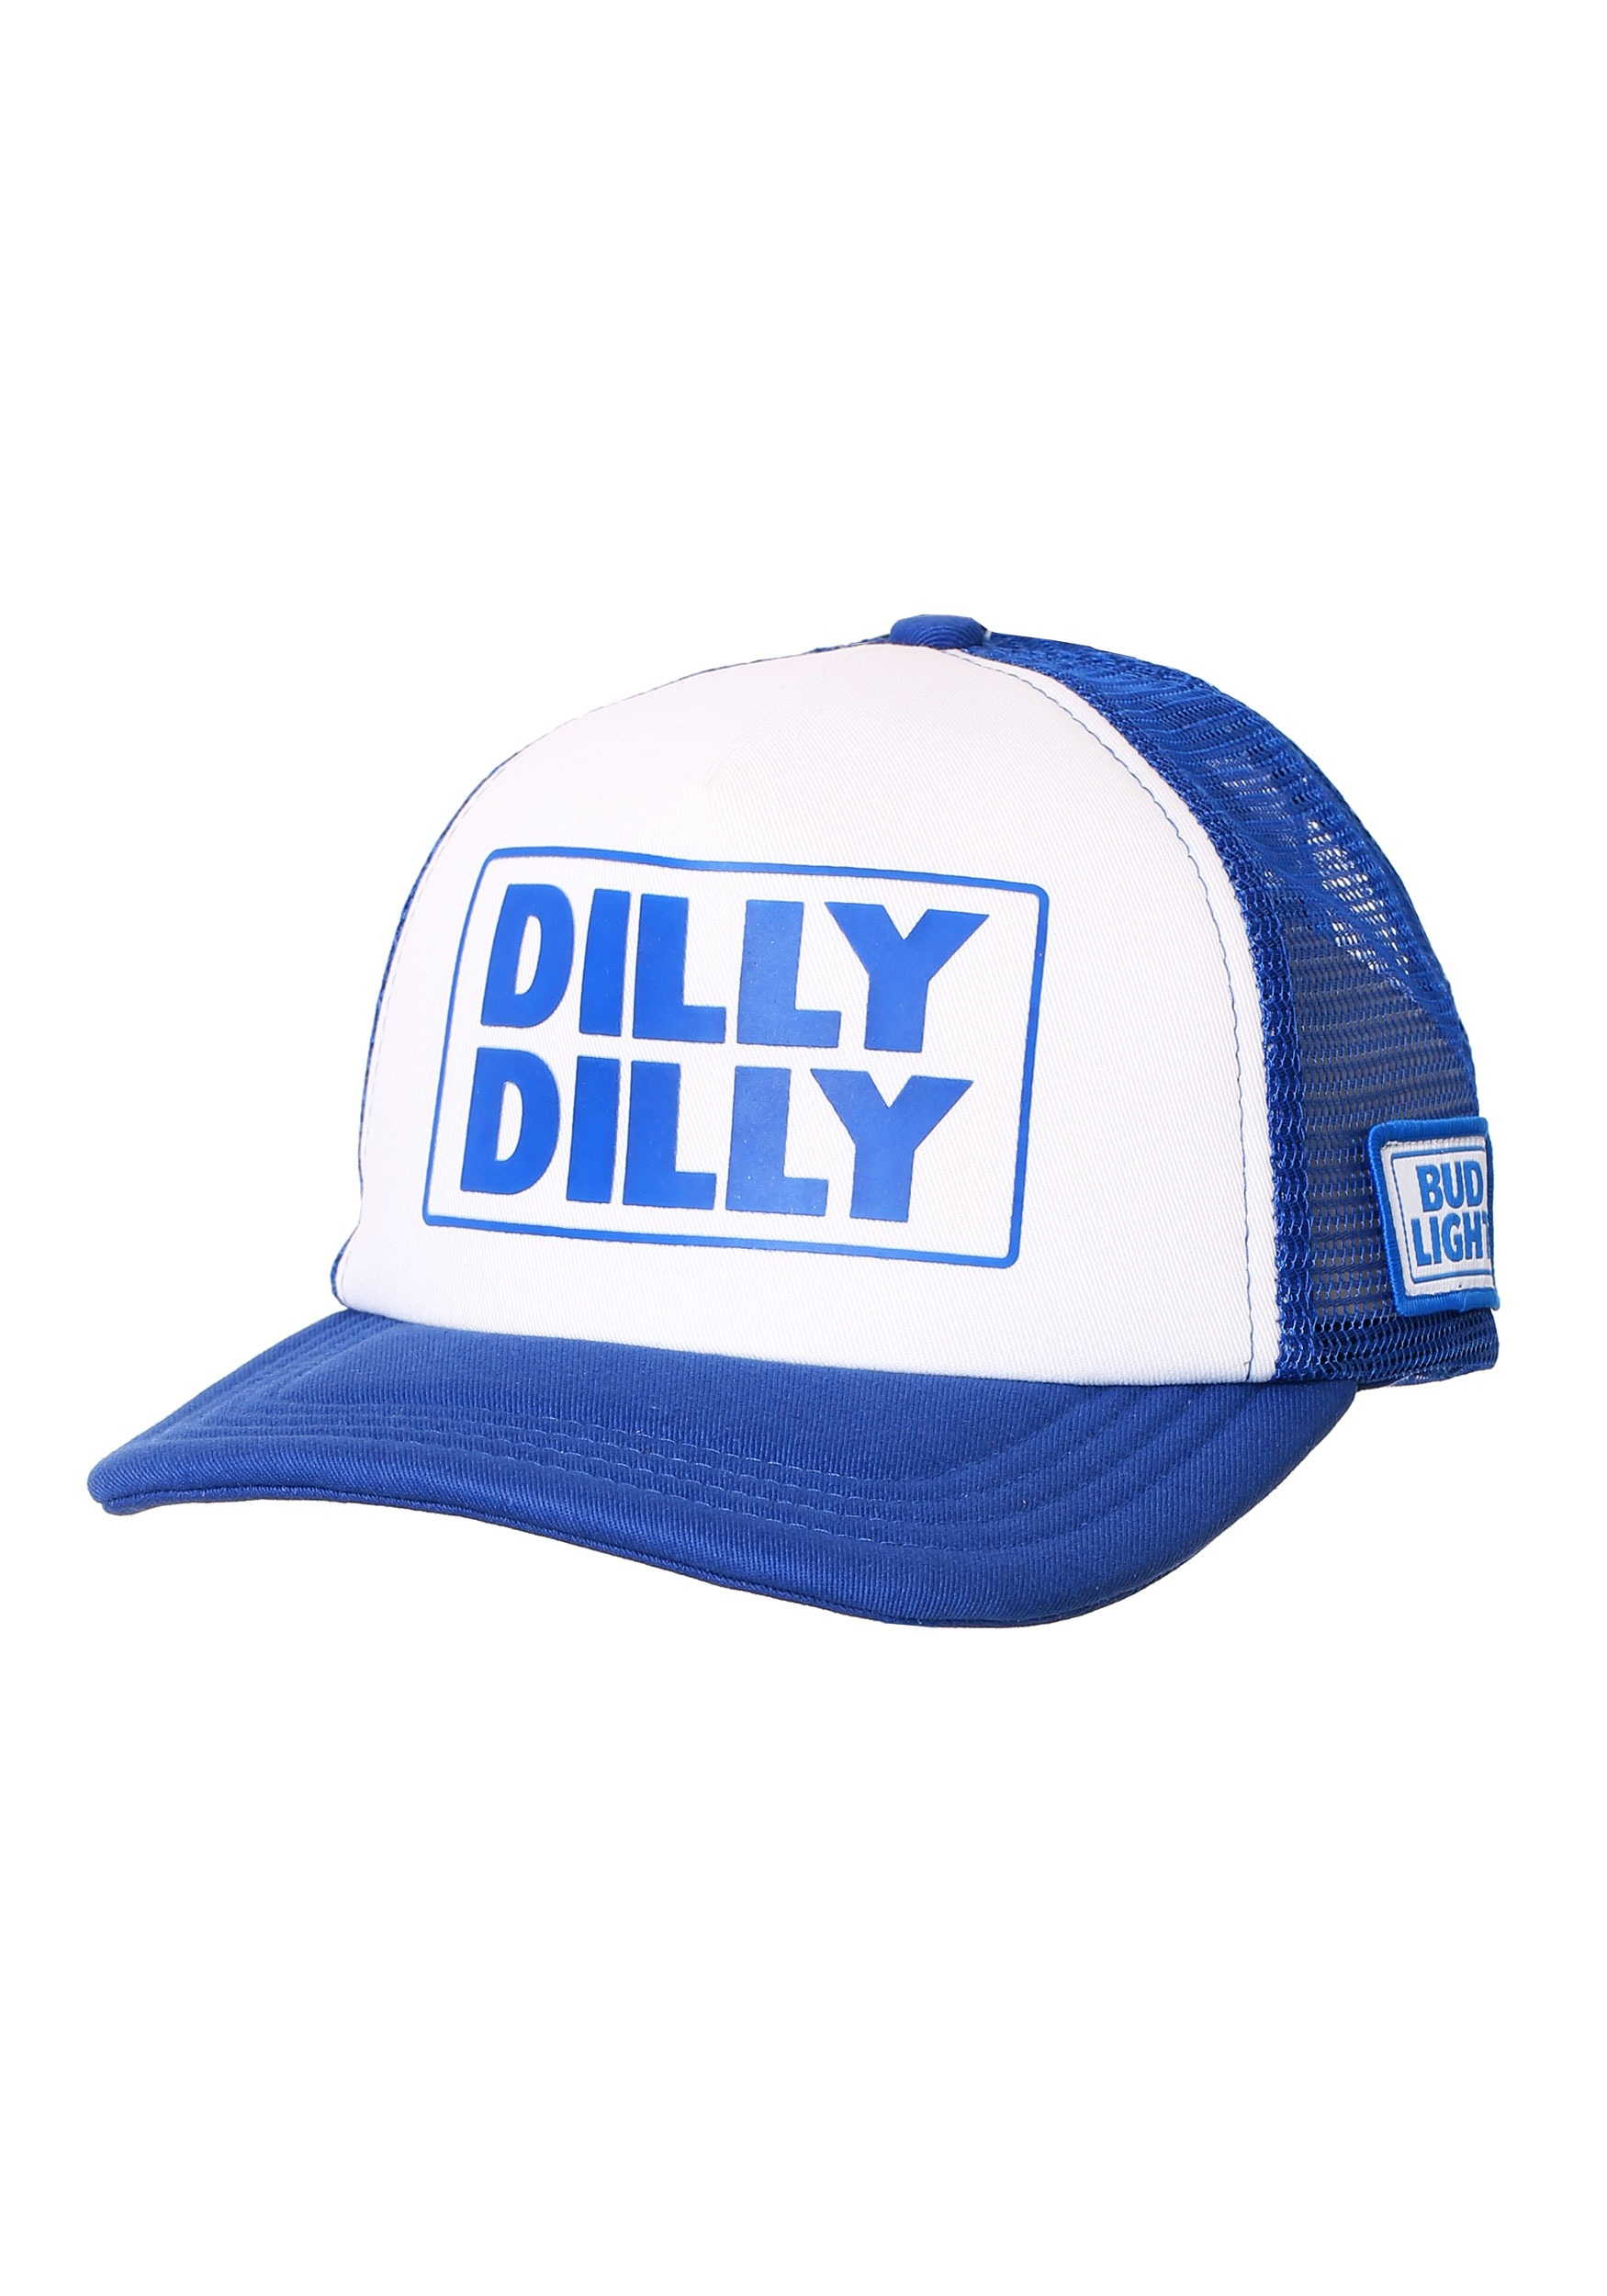 6571fd2fae Dilly Dilly Bud Light White/Blue Trucker Hat